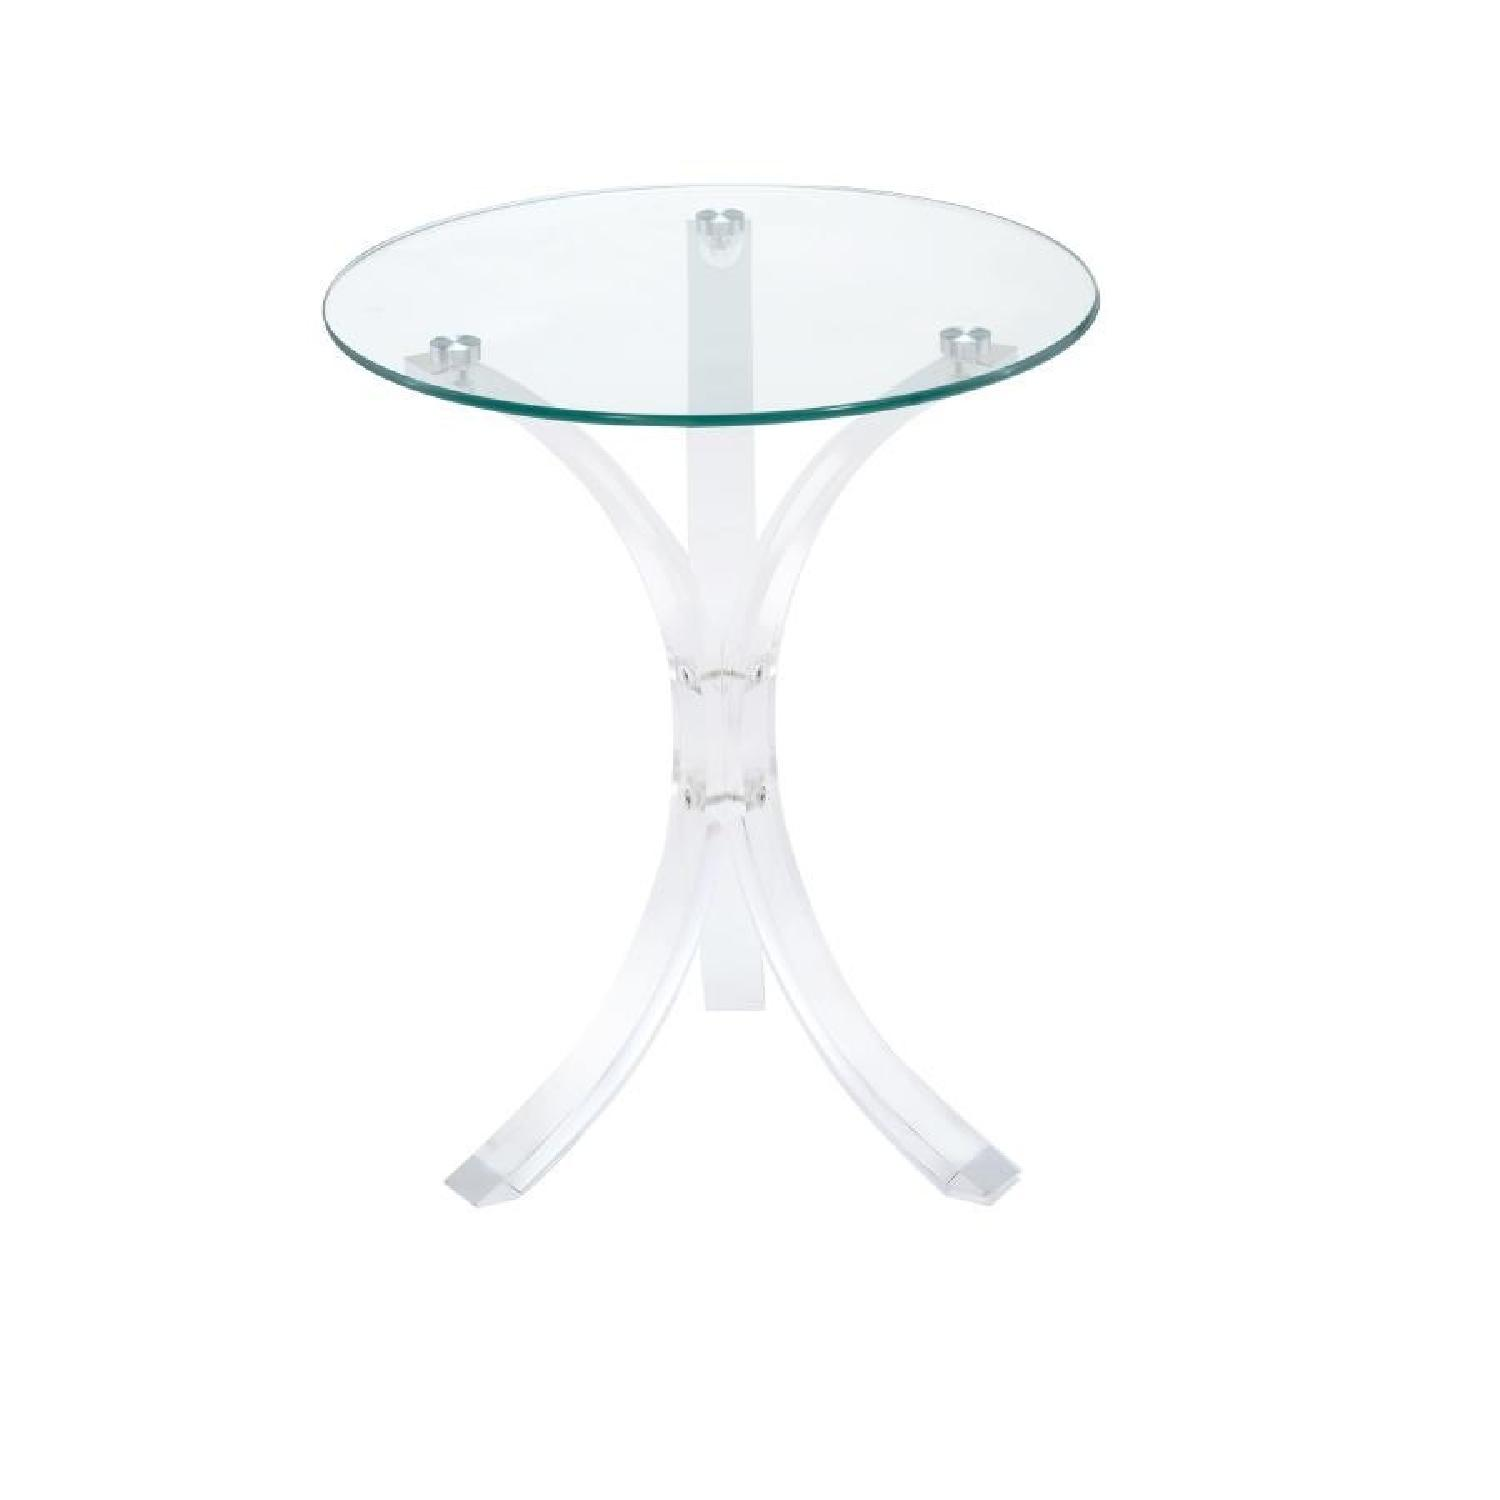 contemporary clear round glass top accent table aptdeco frame tablecloth for oak wood side outdoor lounge chairs dale tiffany hummingbird lamp west elm free shipping code parsons